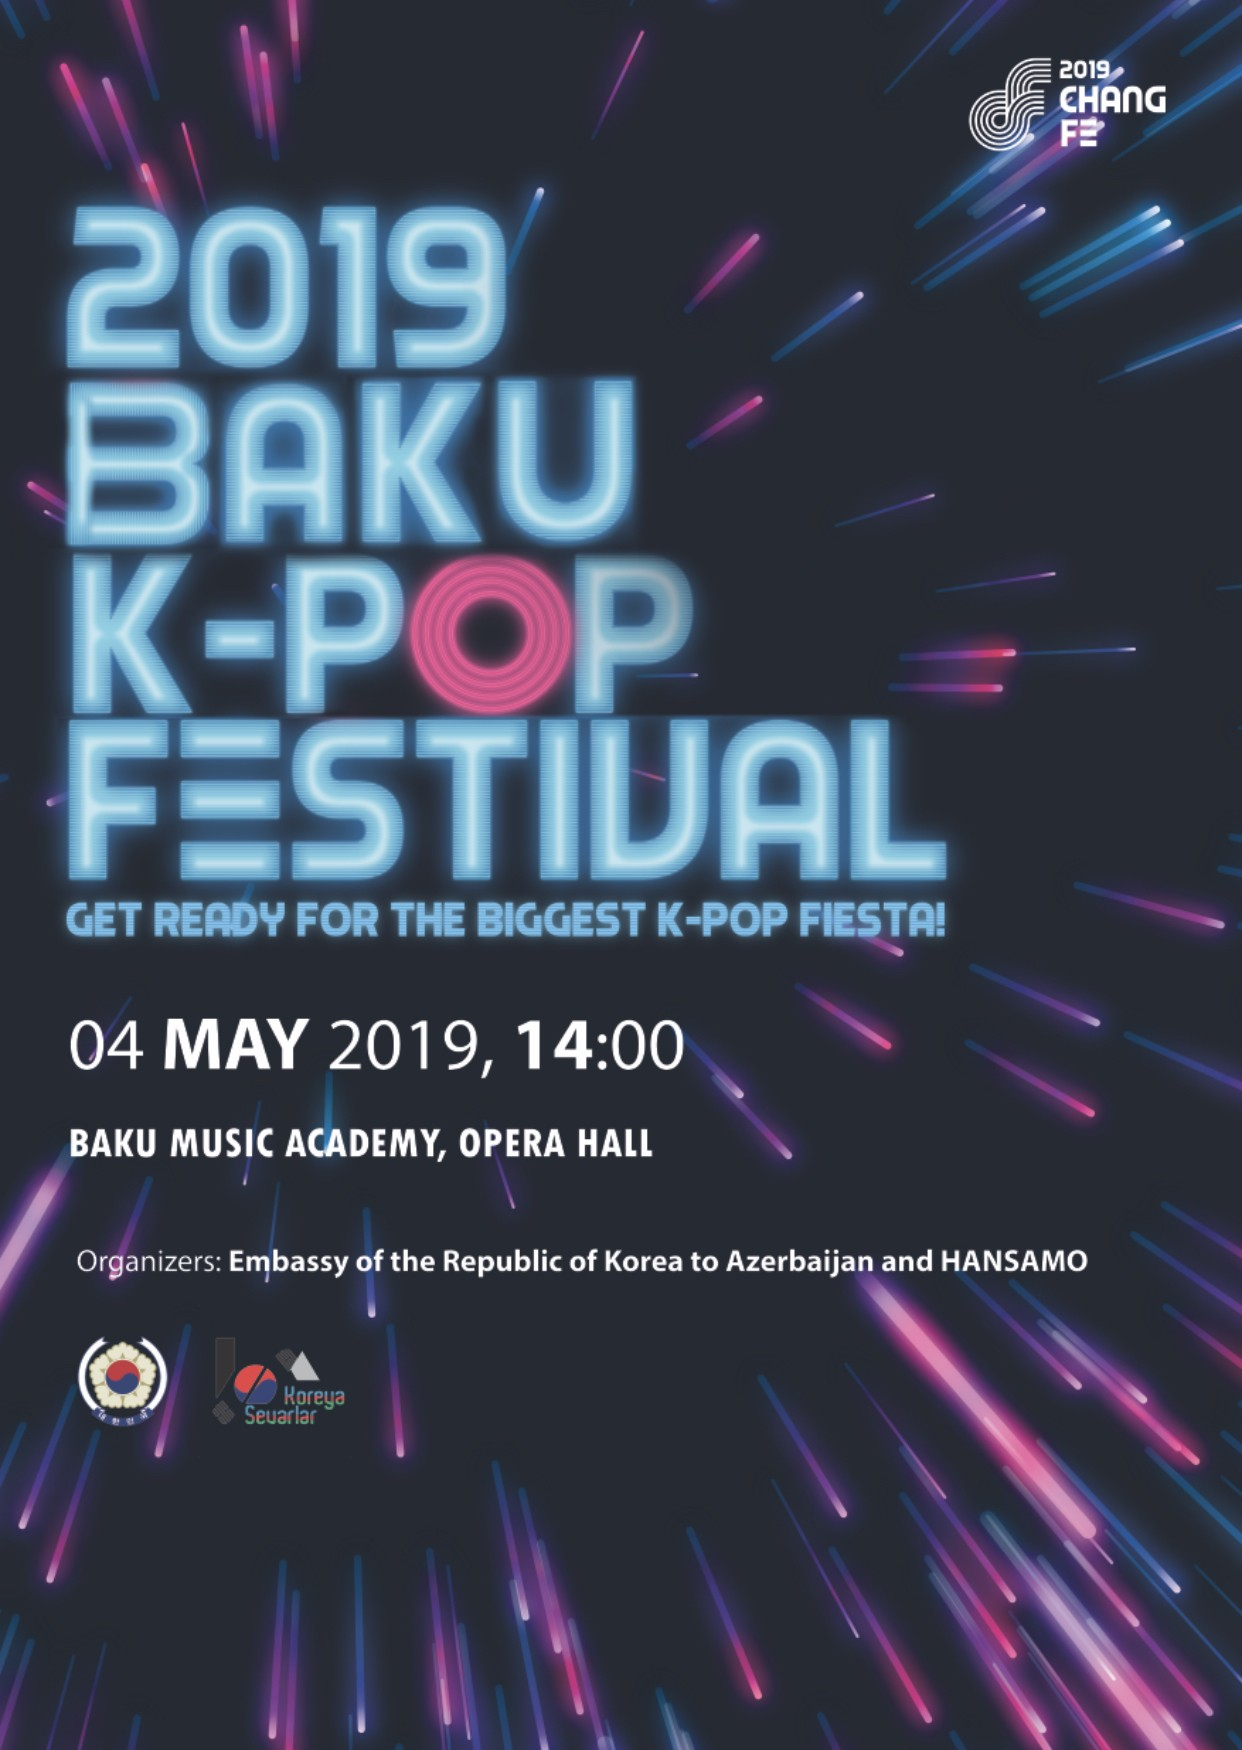 Baku to host K-Pop Korean music festival